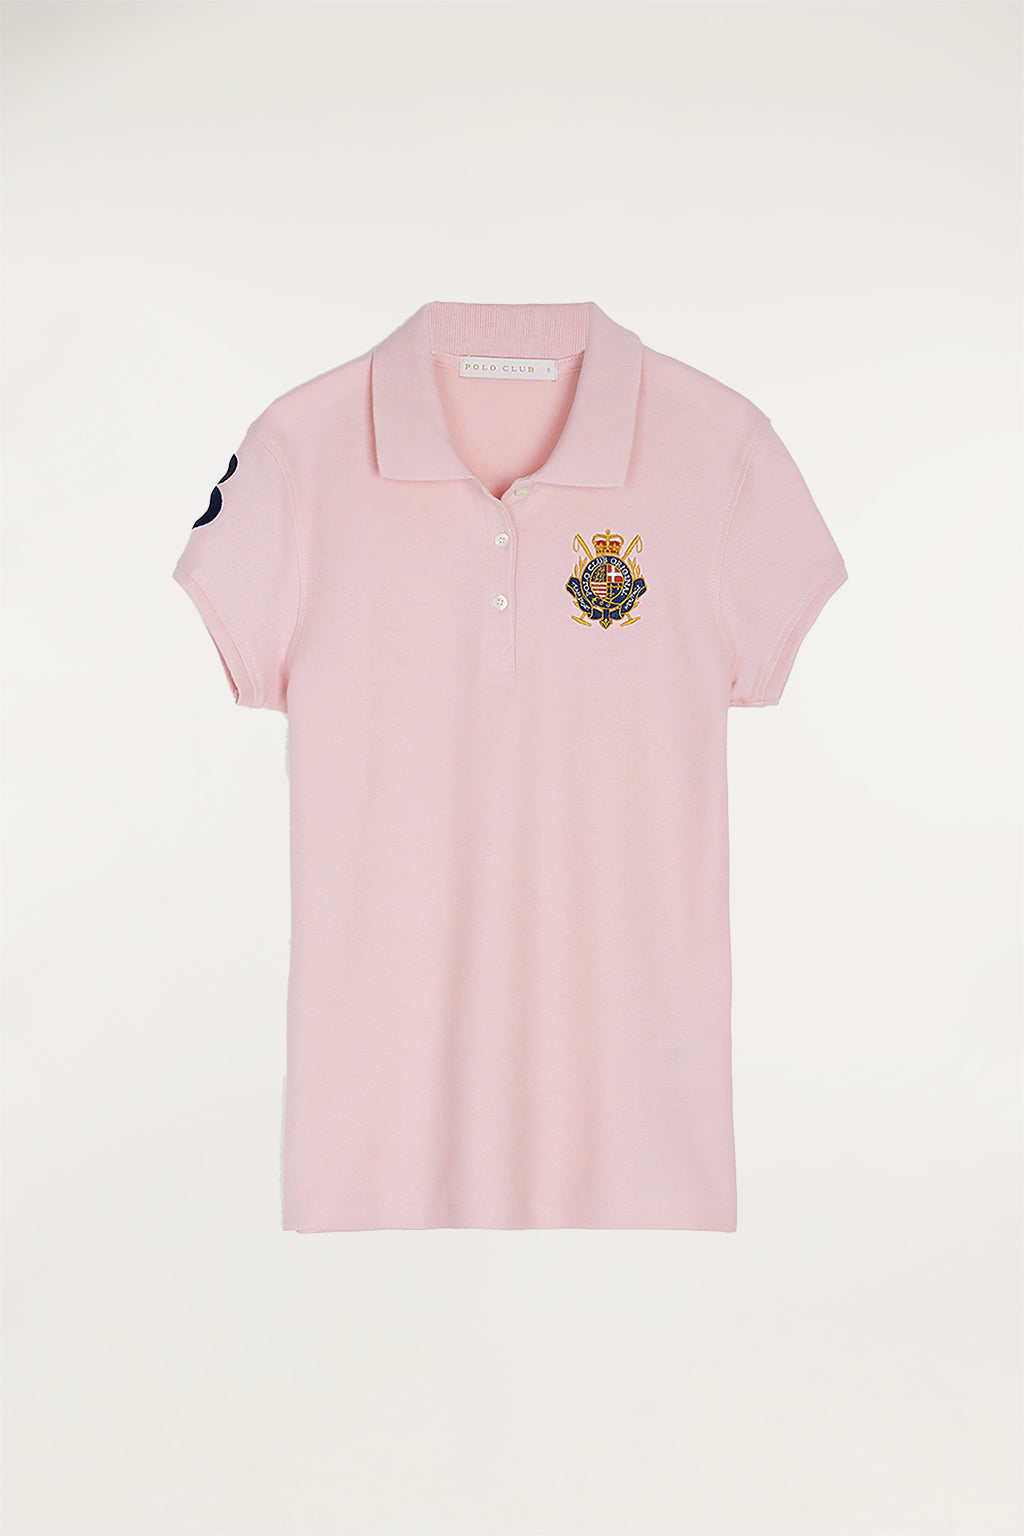 Polo marinero rosa con parche bordado